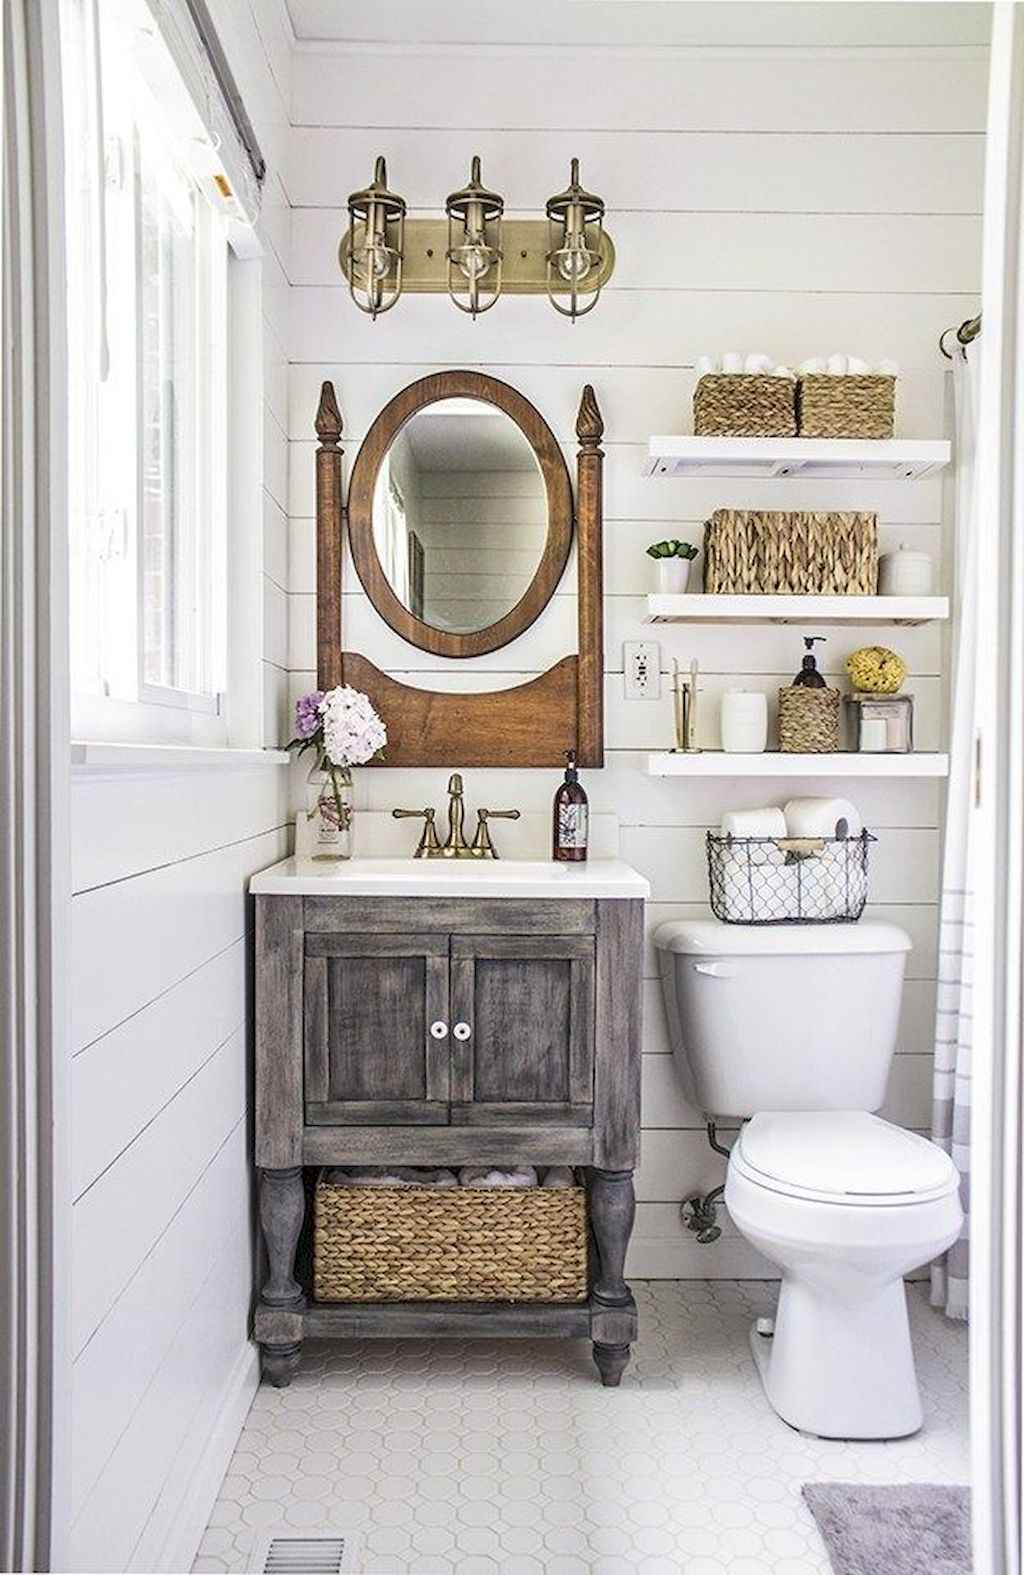 50 best farmhouse bathroom vanity remodel ideas (73) - Roomadness.com